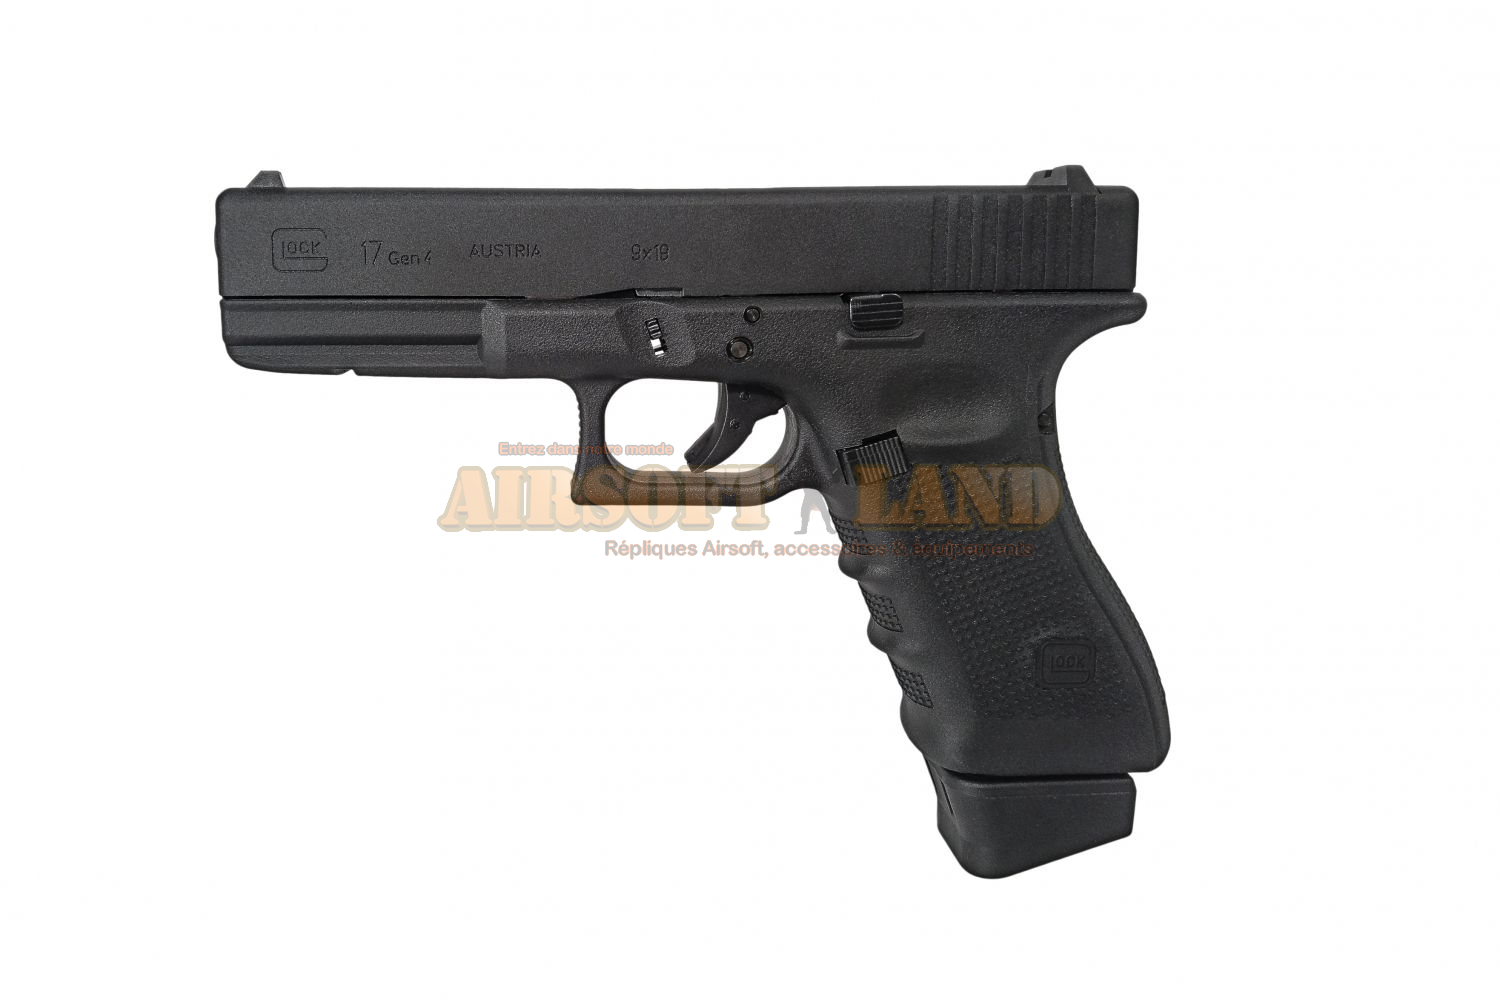 Glock 17 Gen.4 co2 noir